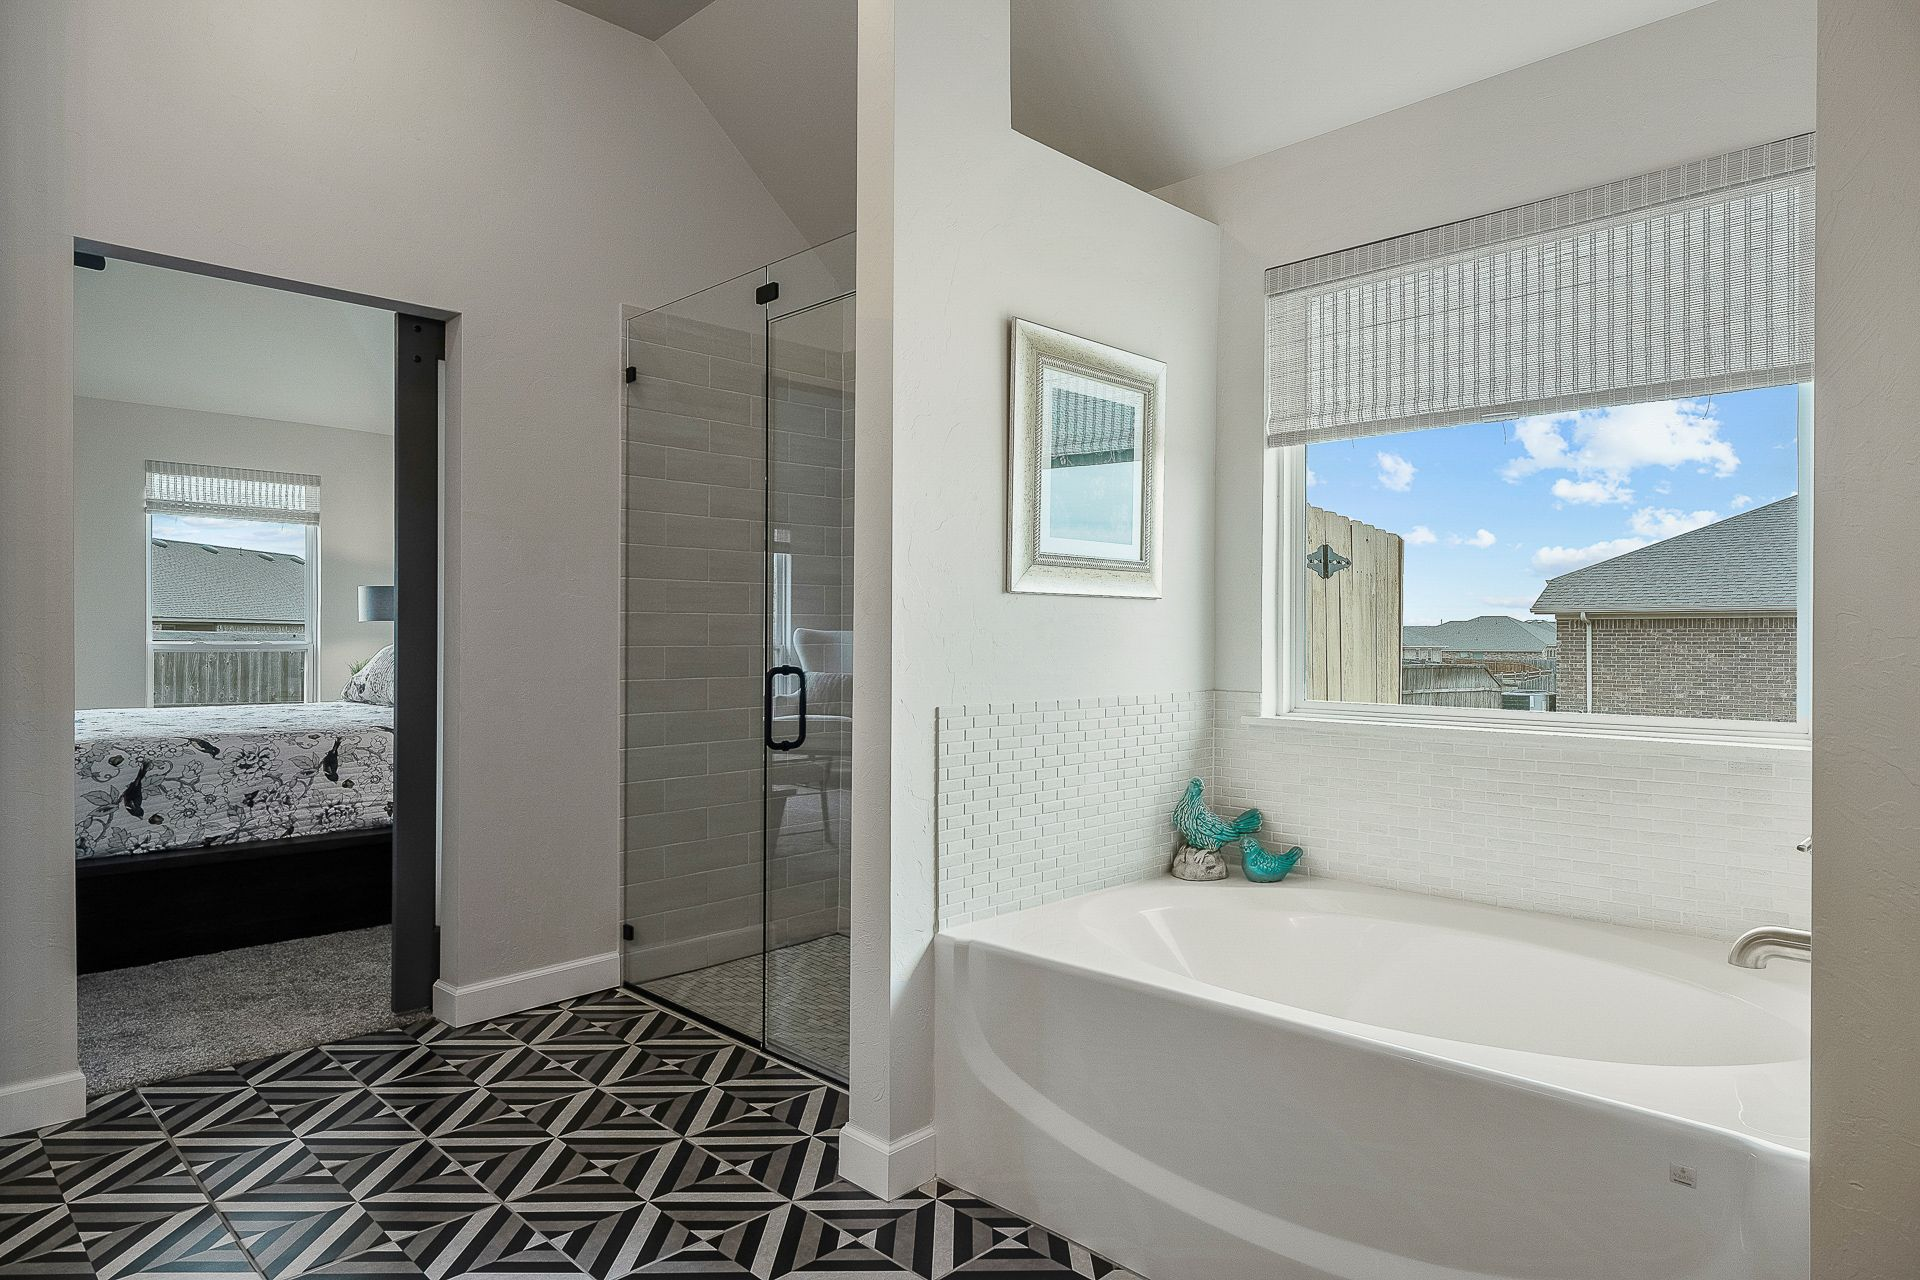 Bathroom featured in the Orwell By Ideal Homes in Oklahoma City, OK